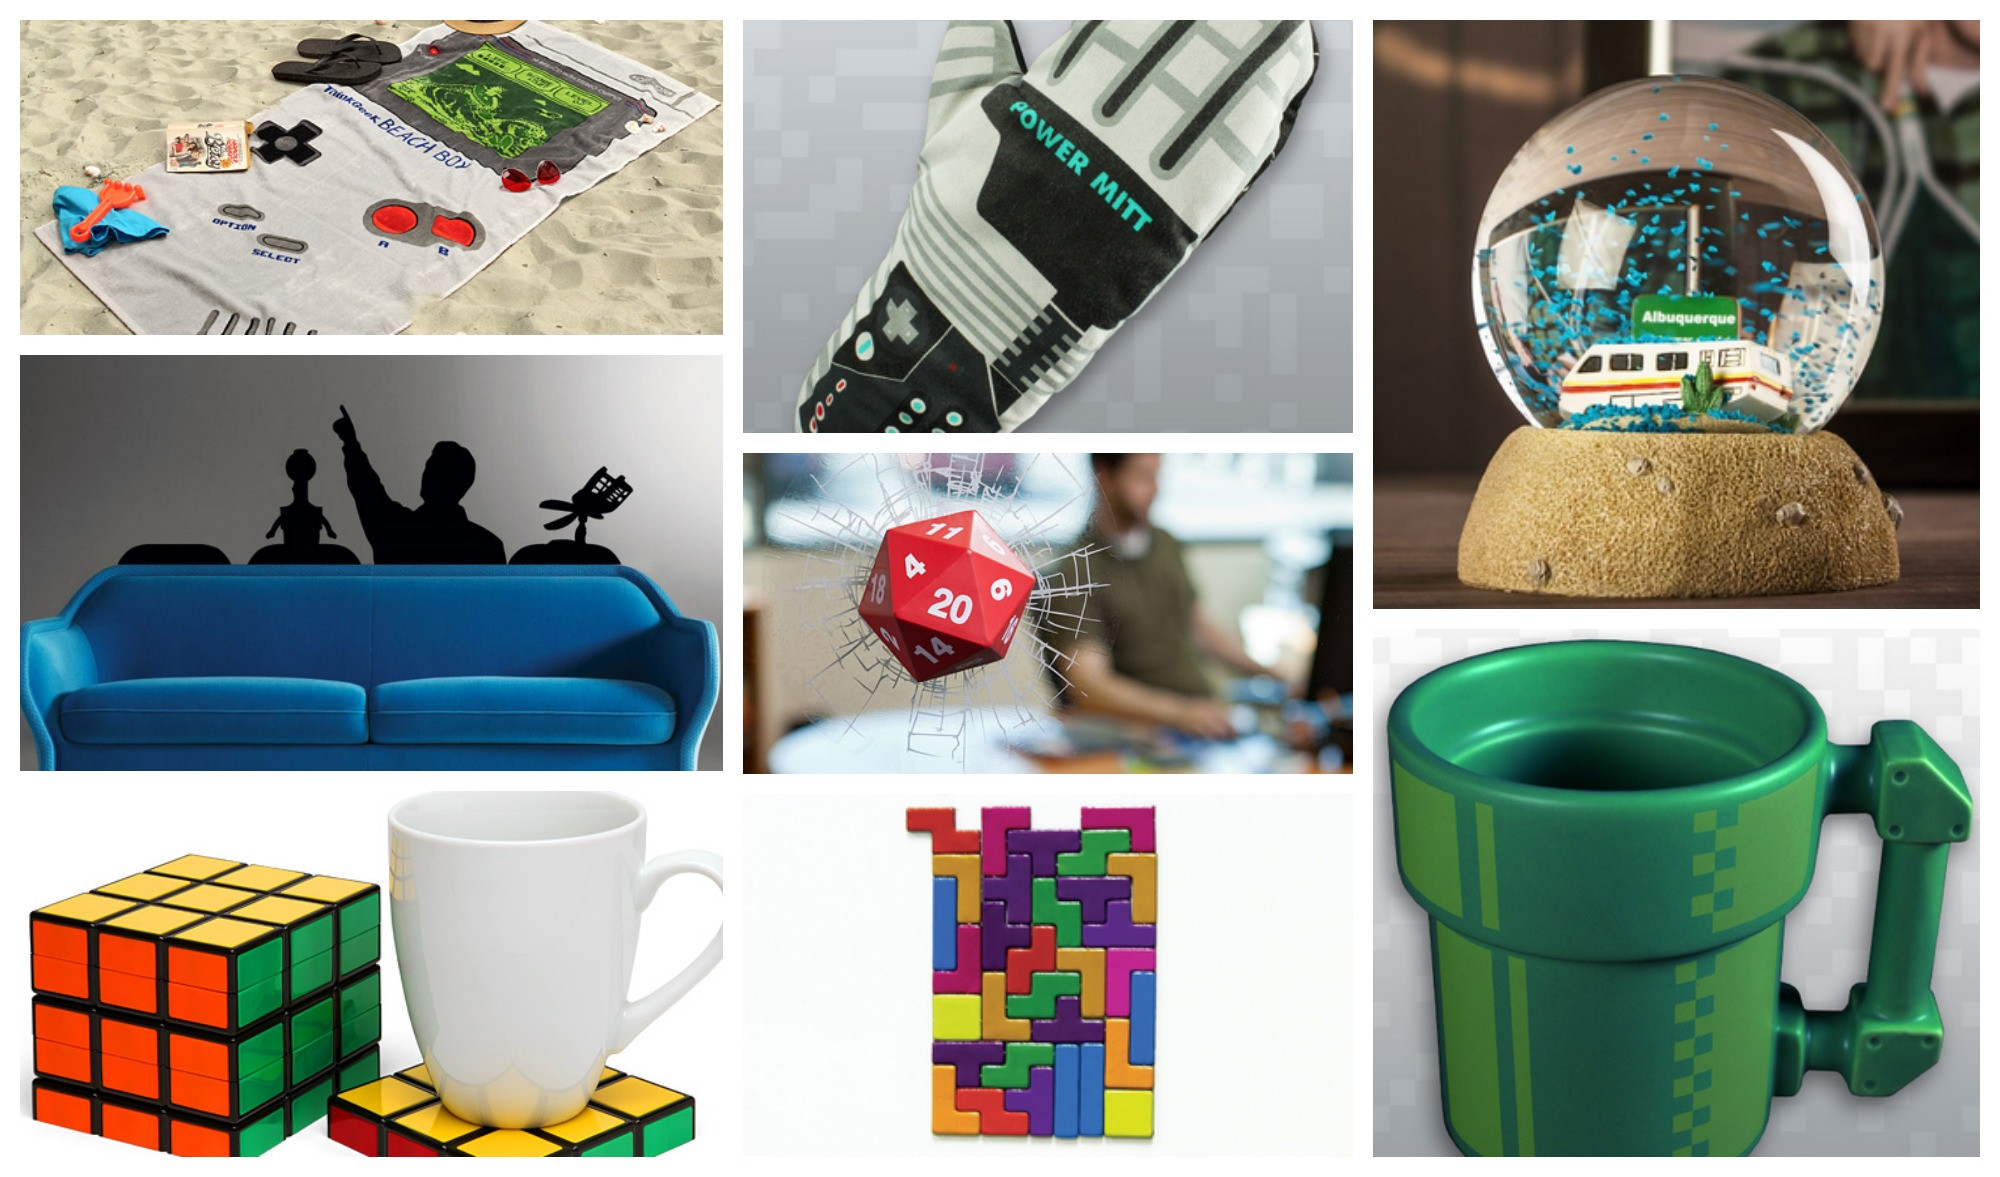 Best ideas about Nerd Gift Ideas . Save or Pin Holiday Guide to Geek Gifts V1 0 Our Nerd Home Now.